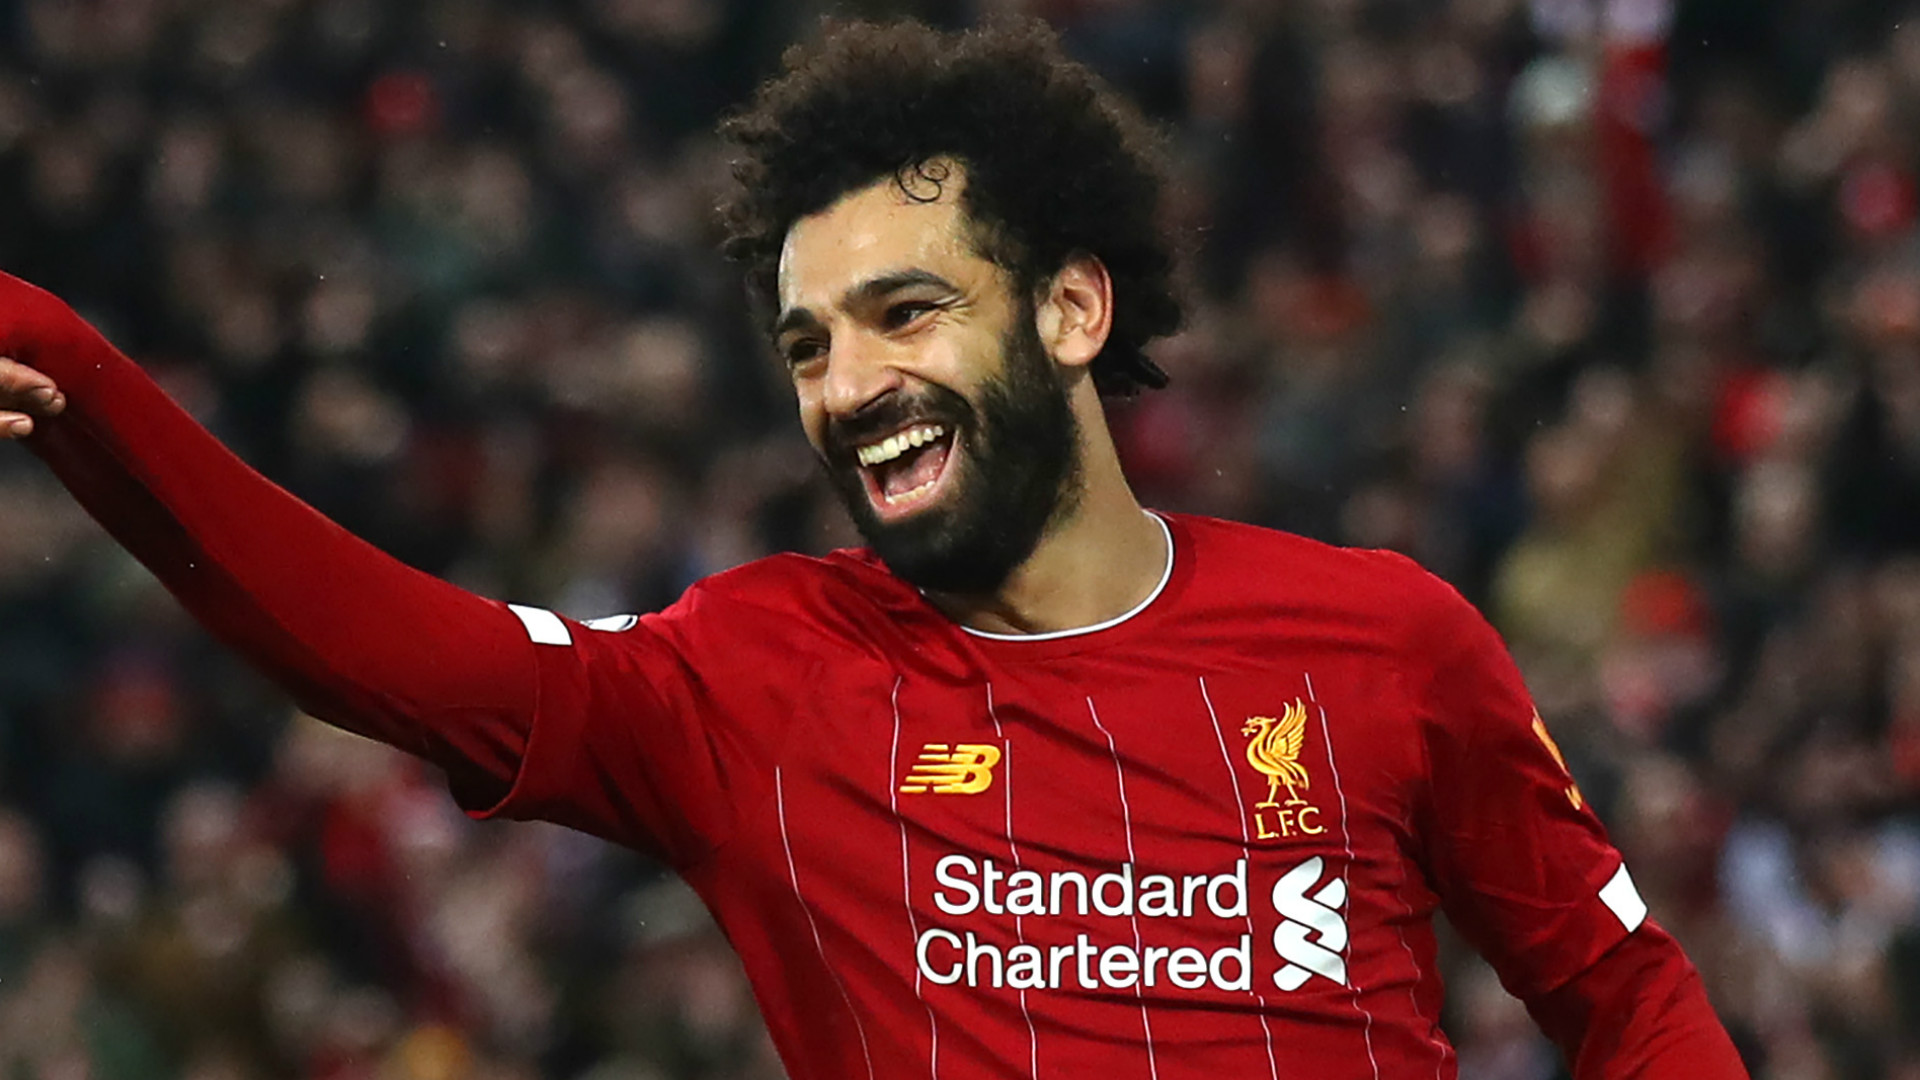 'We shouldn't be immune to Salah's greatness' – Liverpool forward is 'different level', says Crouch